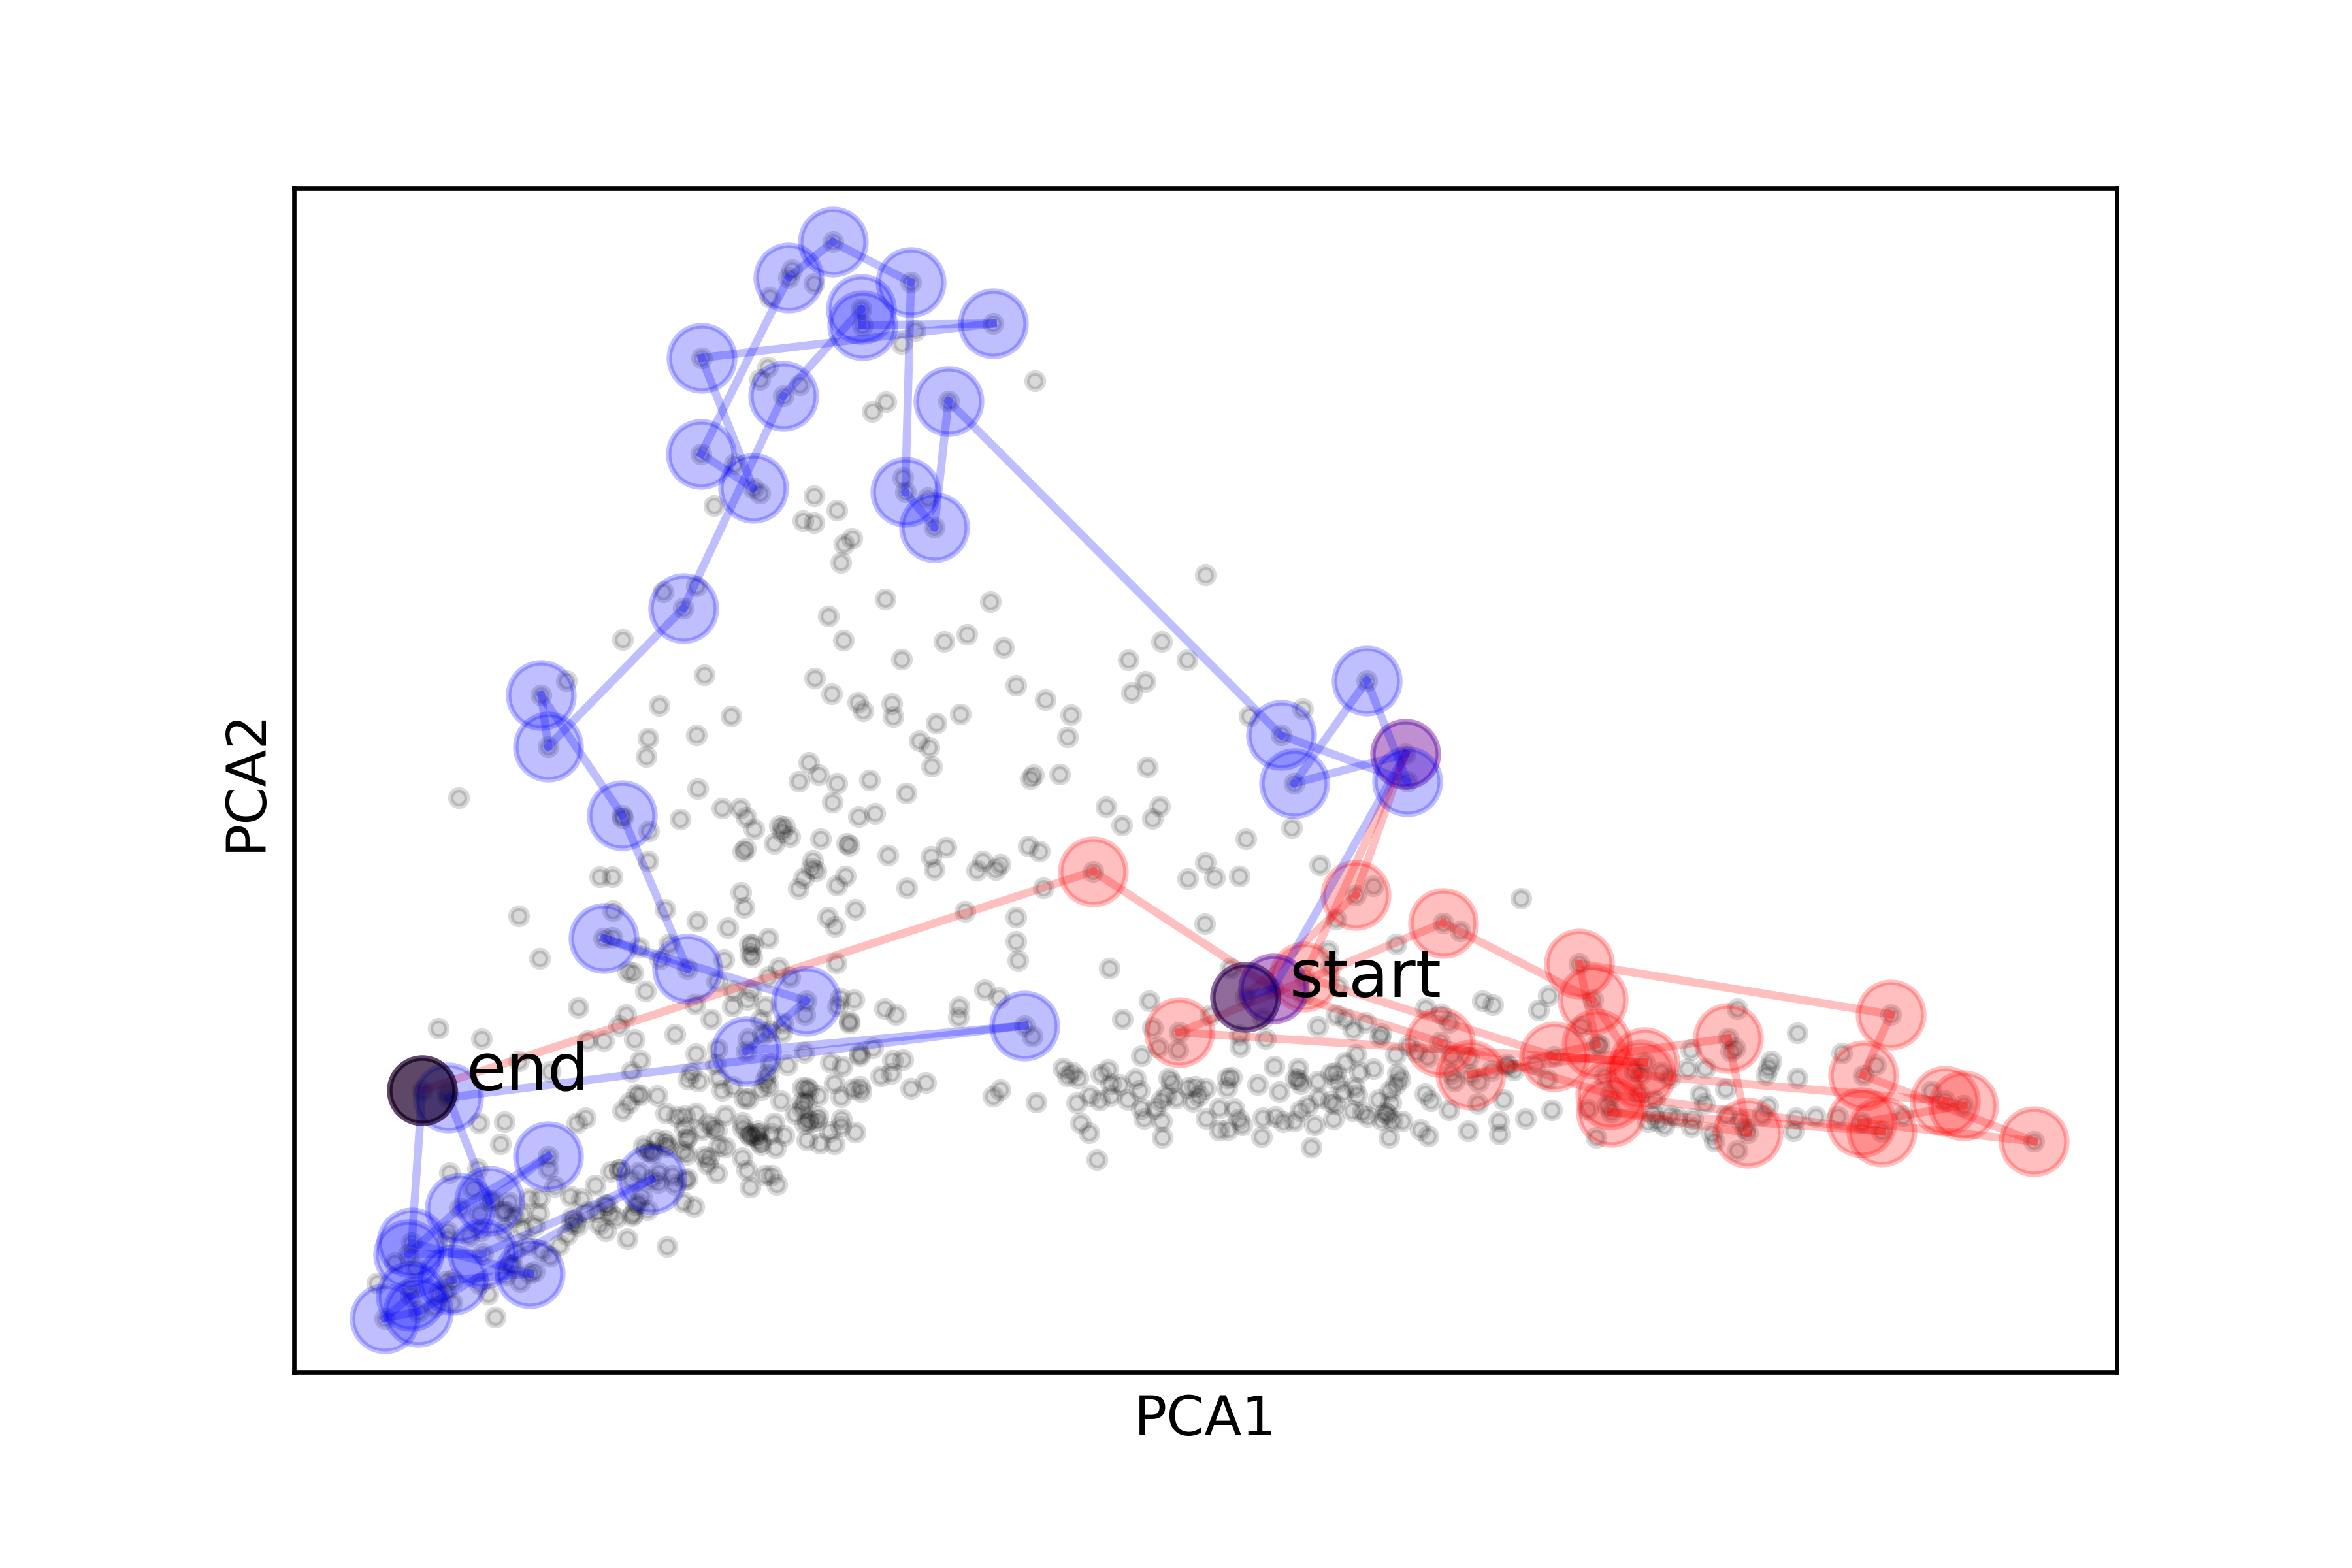 An example path jumps from a start to an end across many more terms than the previous path on the interdisciplinary scatter plot from above.